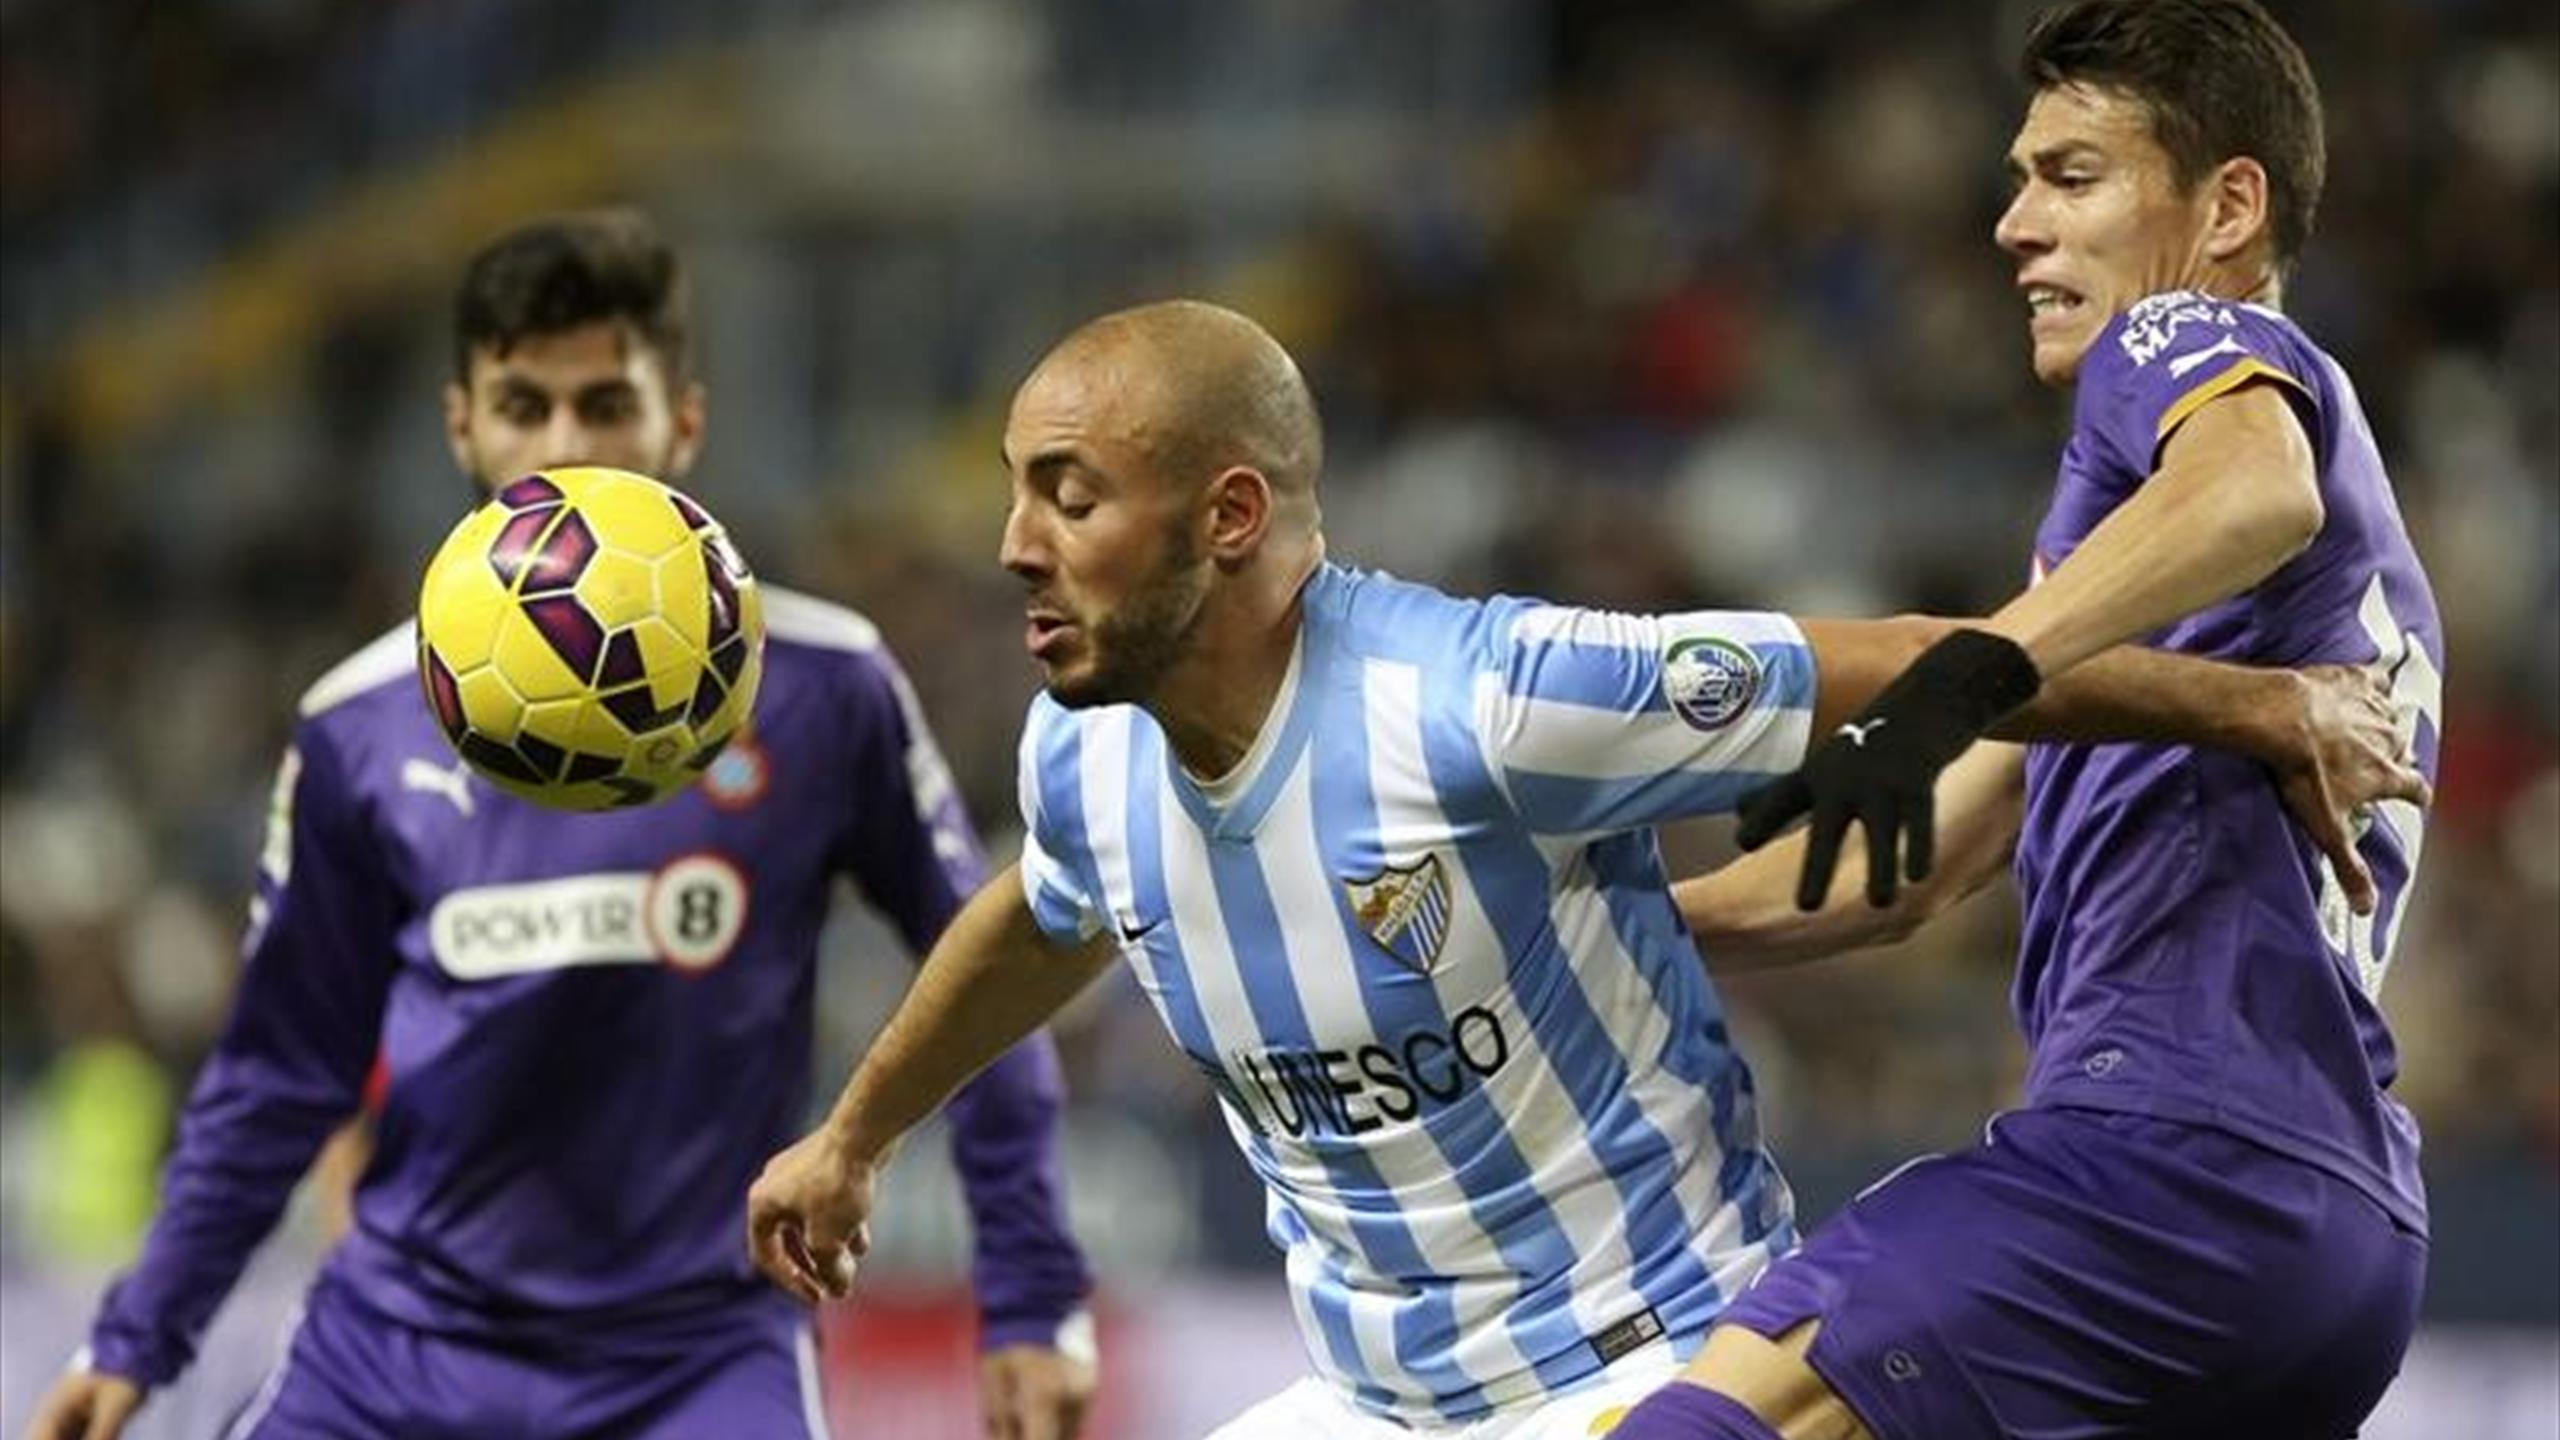 Video: Malaga vs Espanyol